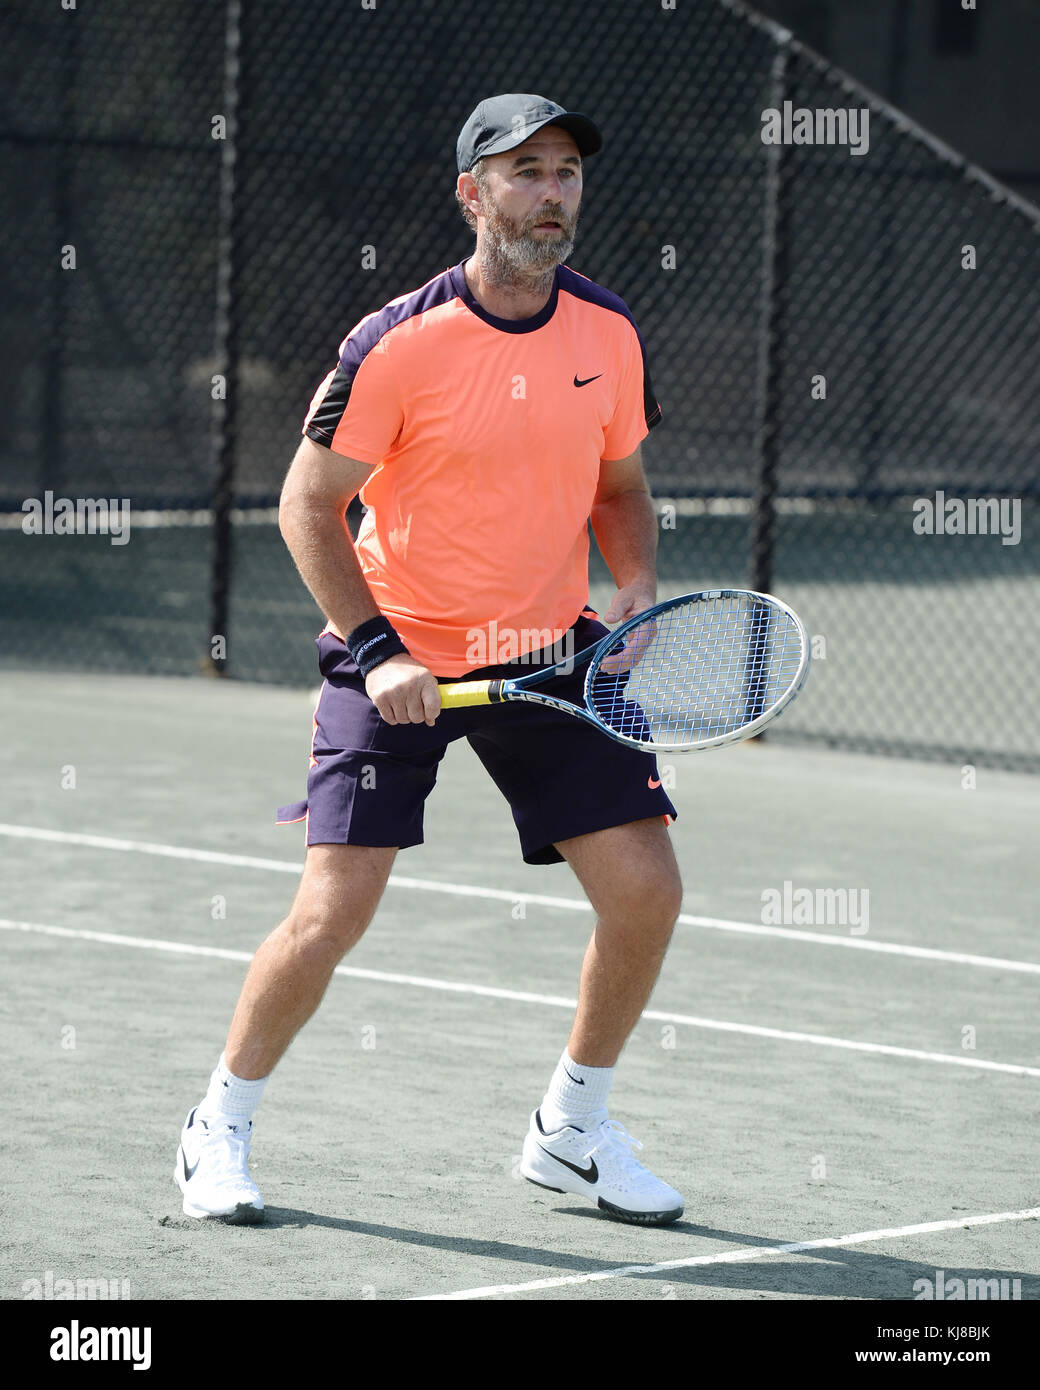 Boca Raton Fl November 18 Jamie Mcshane At The Boca Raton Resort Stock Photo Alamy Jamie was born and raised in northern new jersey with his four siblings. https www alamy com stock image boca raton fl november 18 jamie mcshane at the boca raton resort tennis 166141883 html